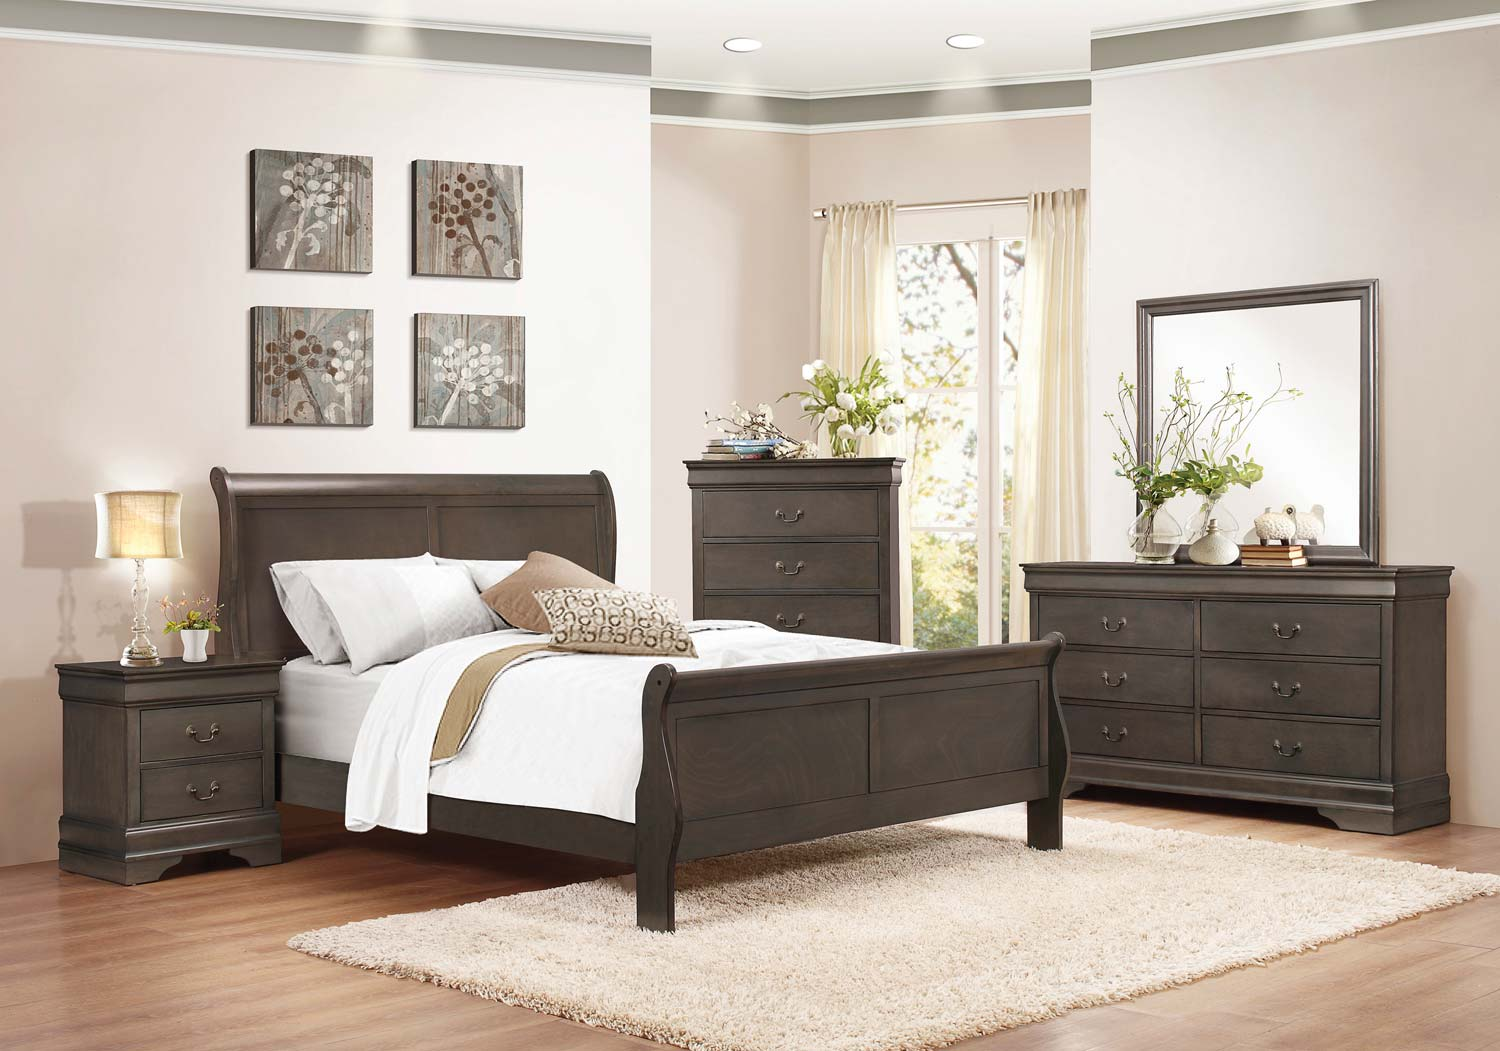 Homelegance mayville sleigh bedroom set stained grey for Bedroom furniture for less